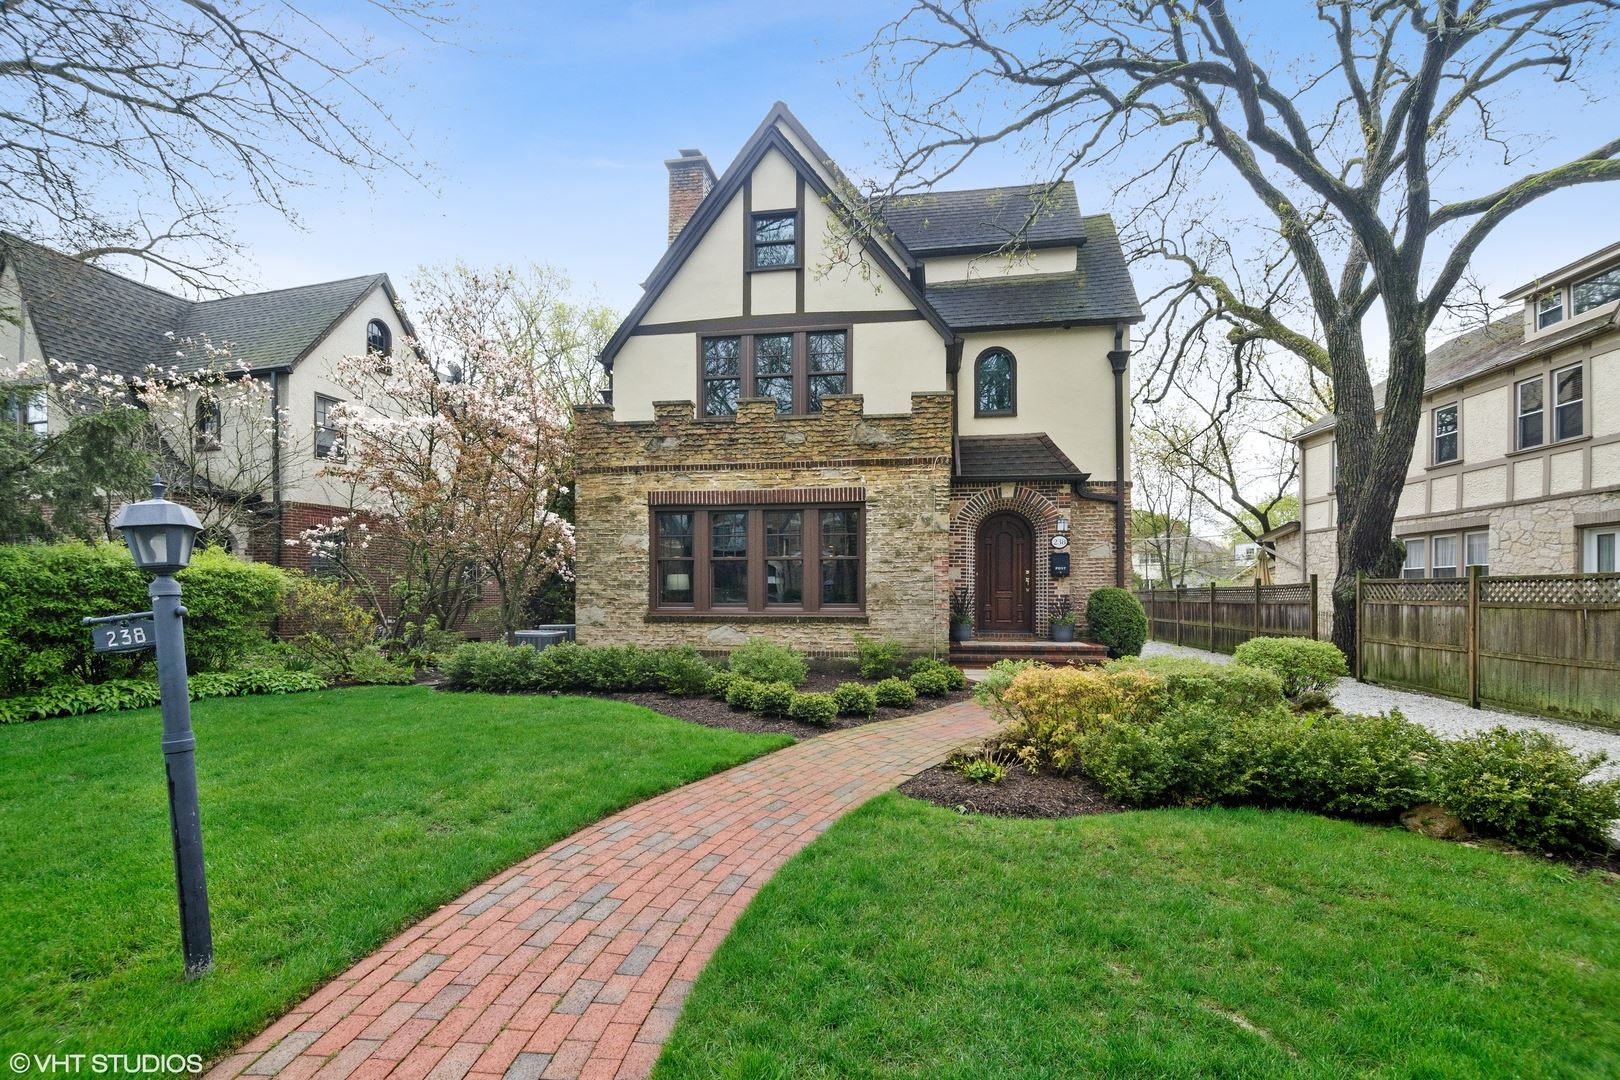 238 Woodlawn Avenue, Winnetka, IL 60093 - #: 10718081